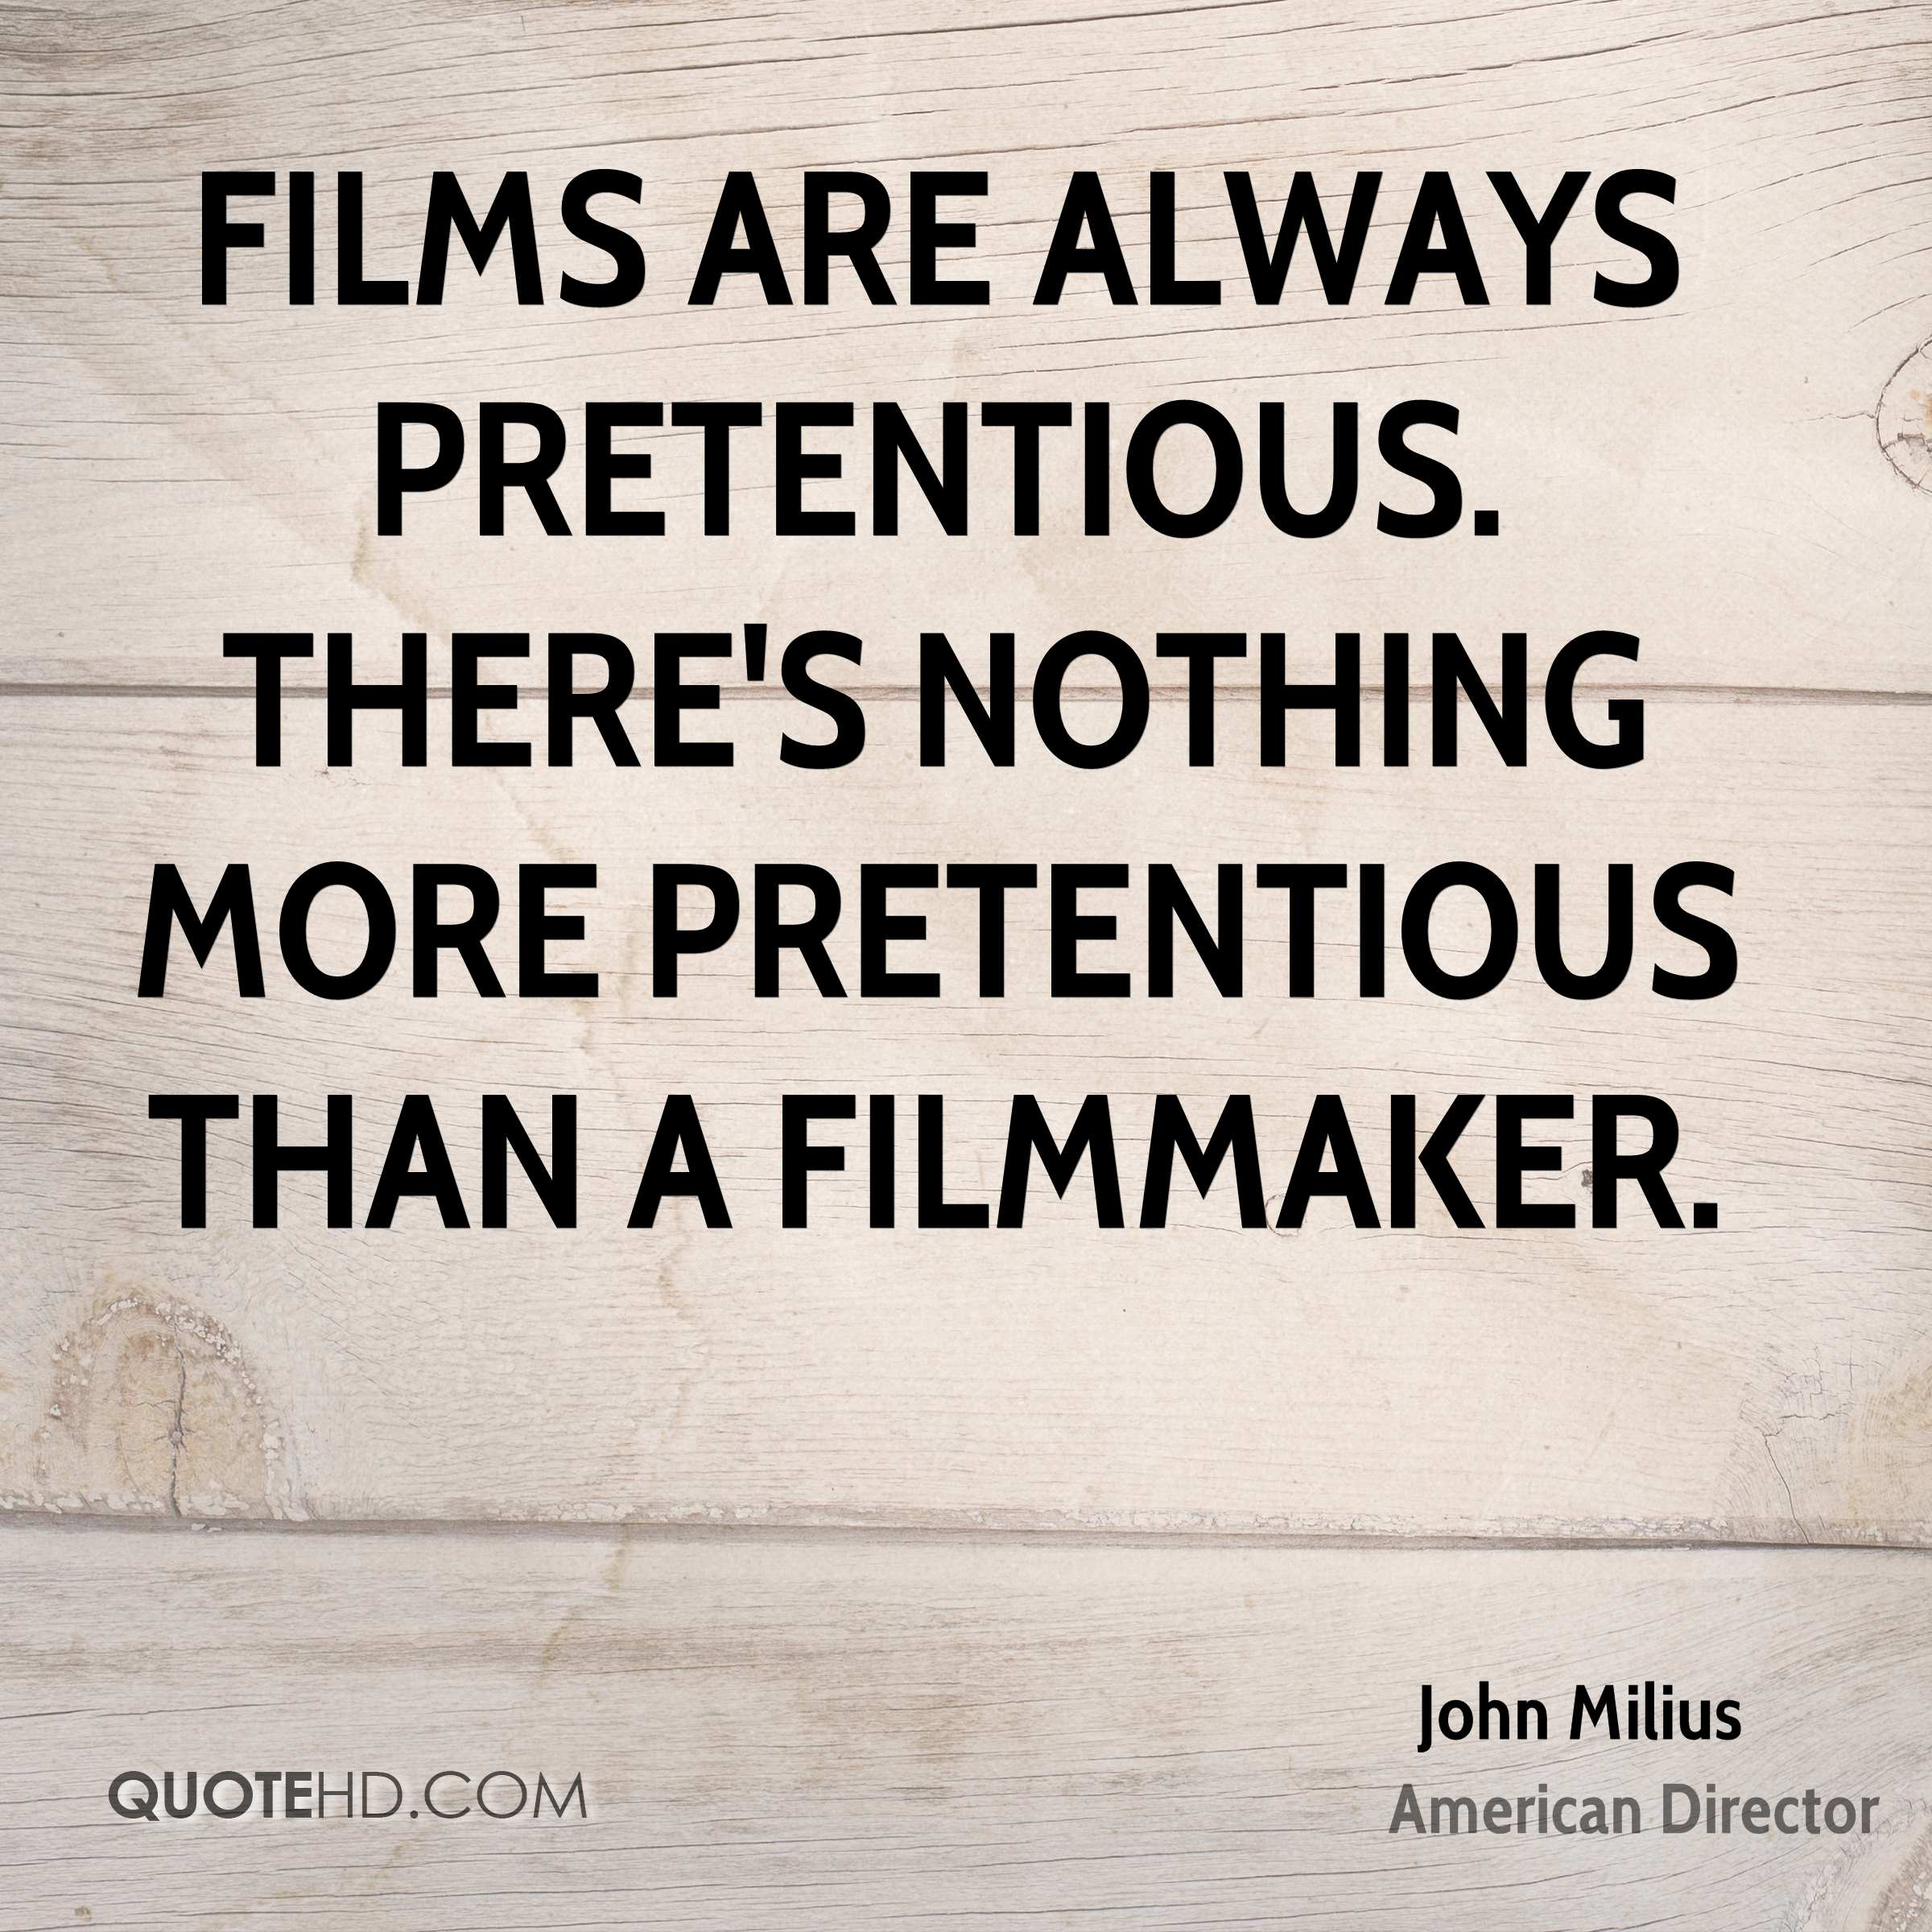 Films are always pretentious. There's nothing more pretentious than a filmmaker.